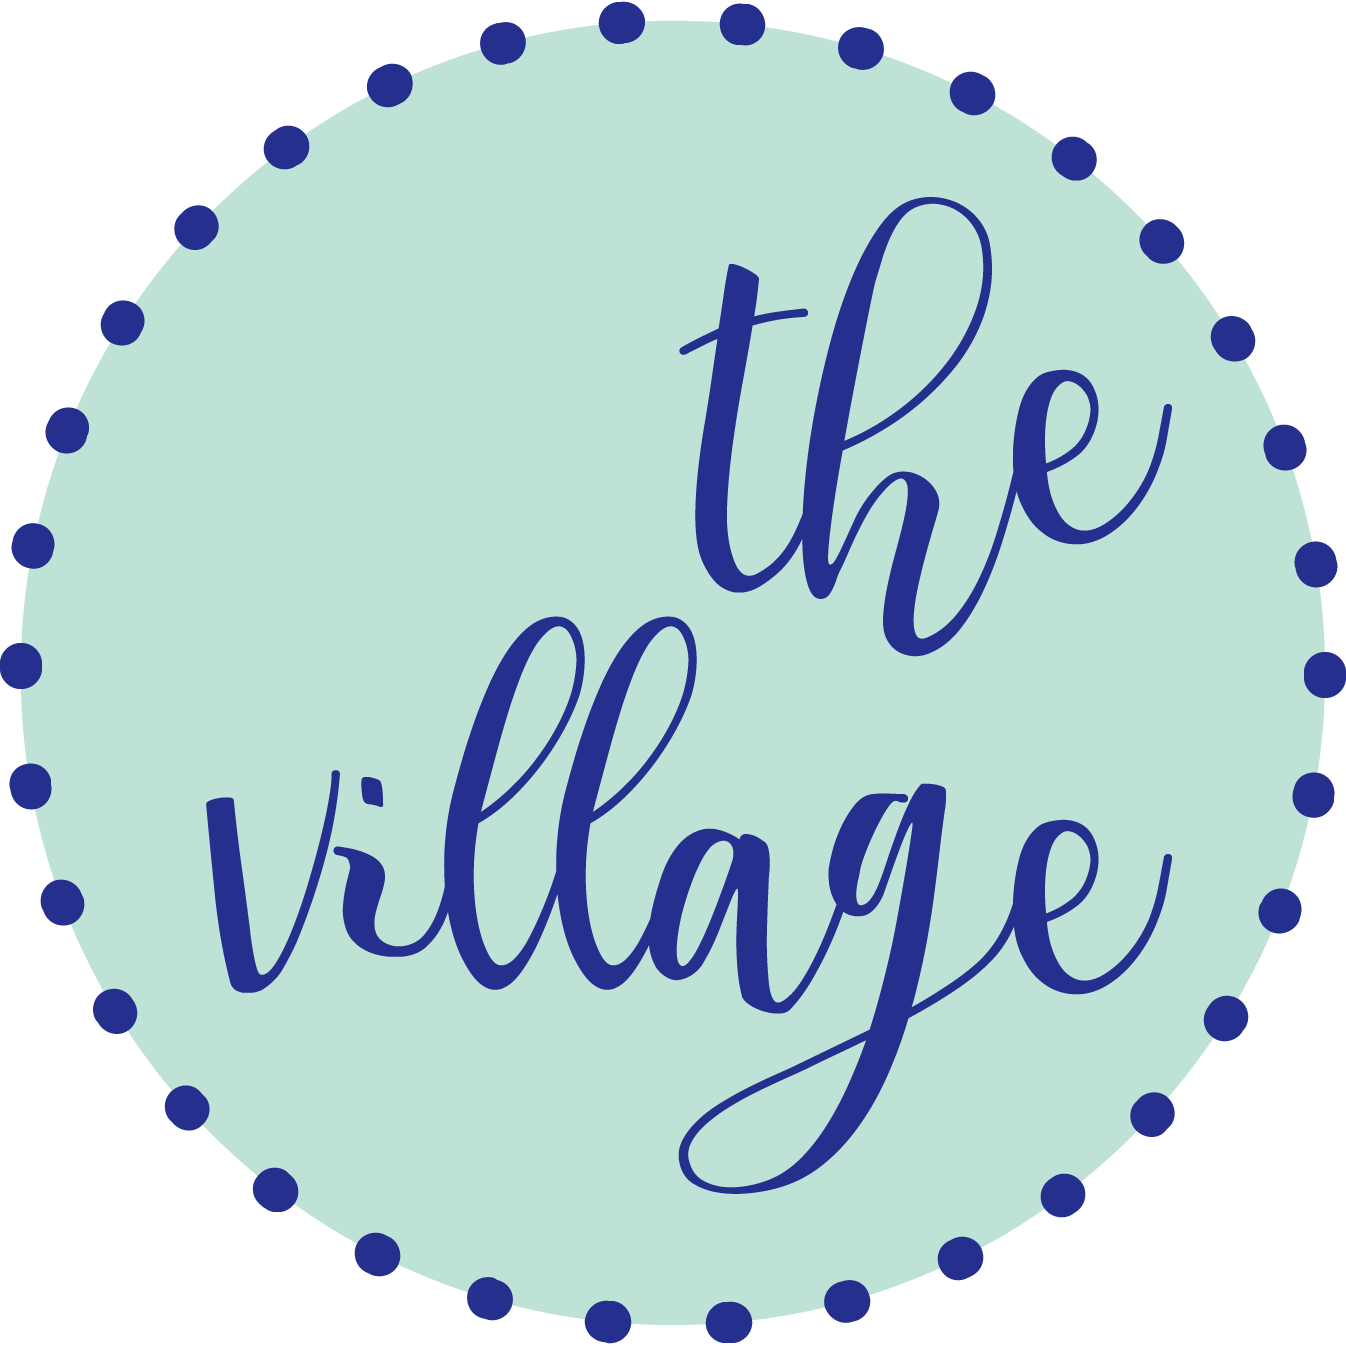 Village-Logo-Option-1.png